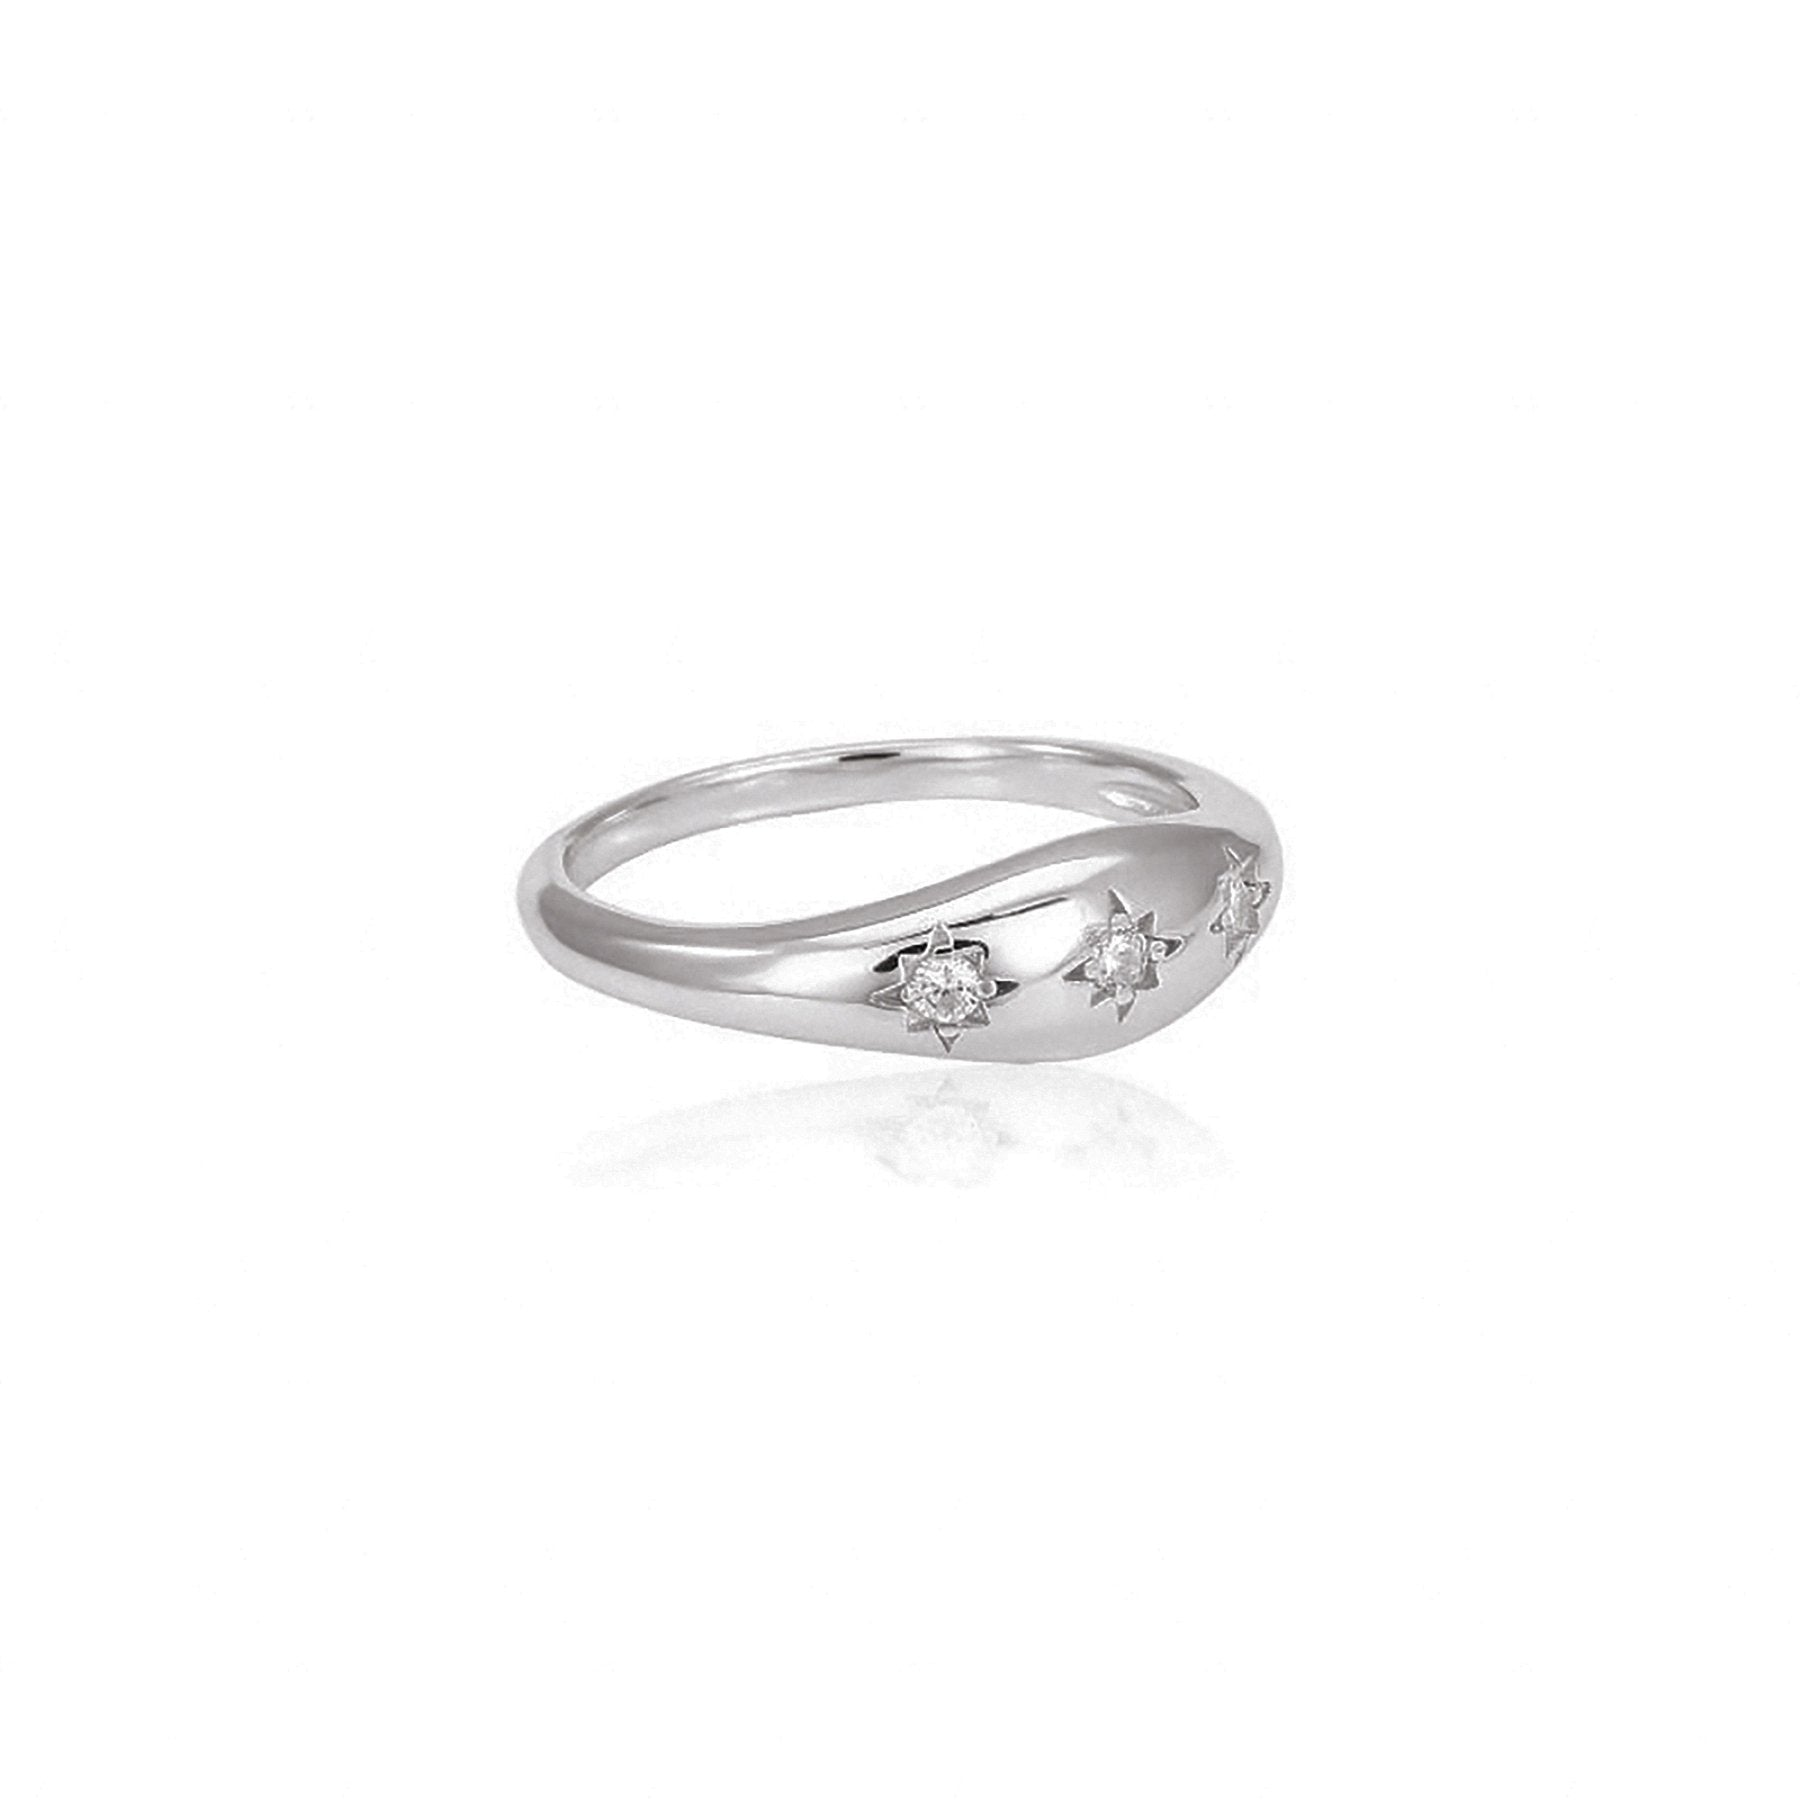 PROMINENT COVER RING WITH 3 STARS STERLING SILVER 925